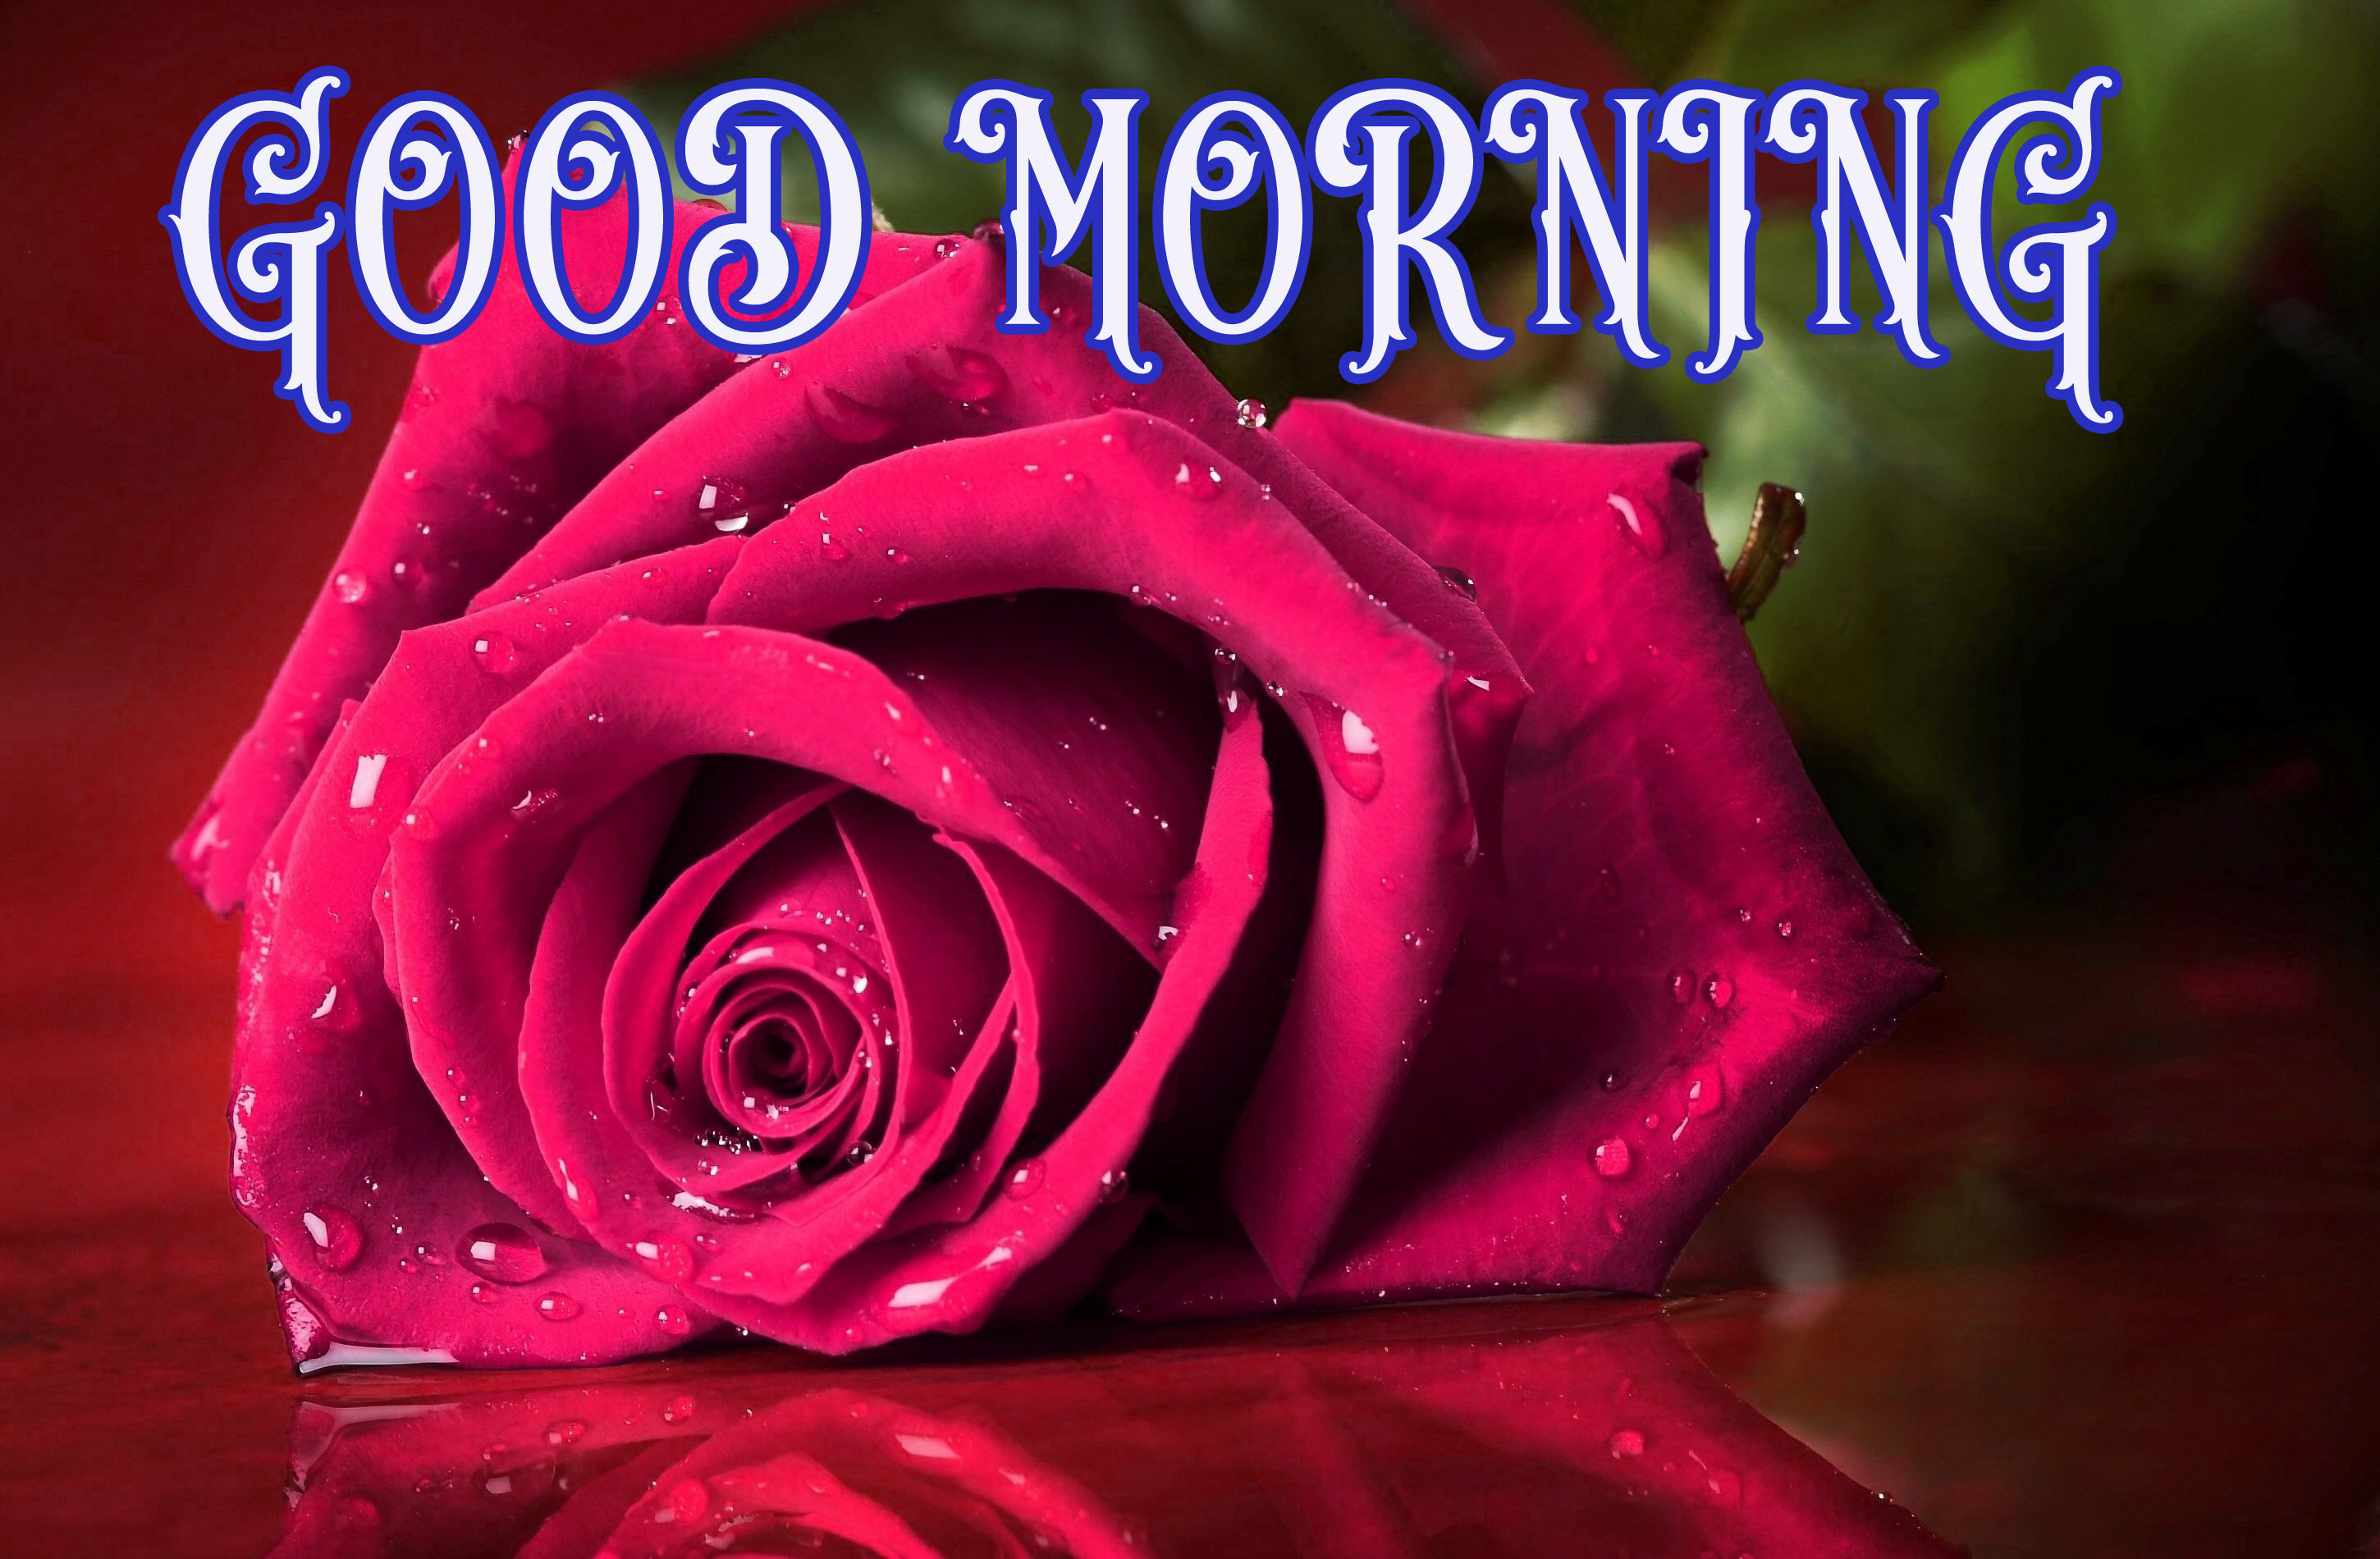 New Lover Good Morning Images Wallpaper Pics With Red Rose